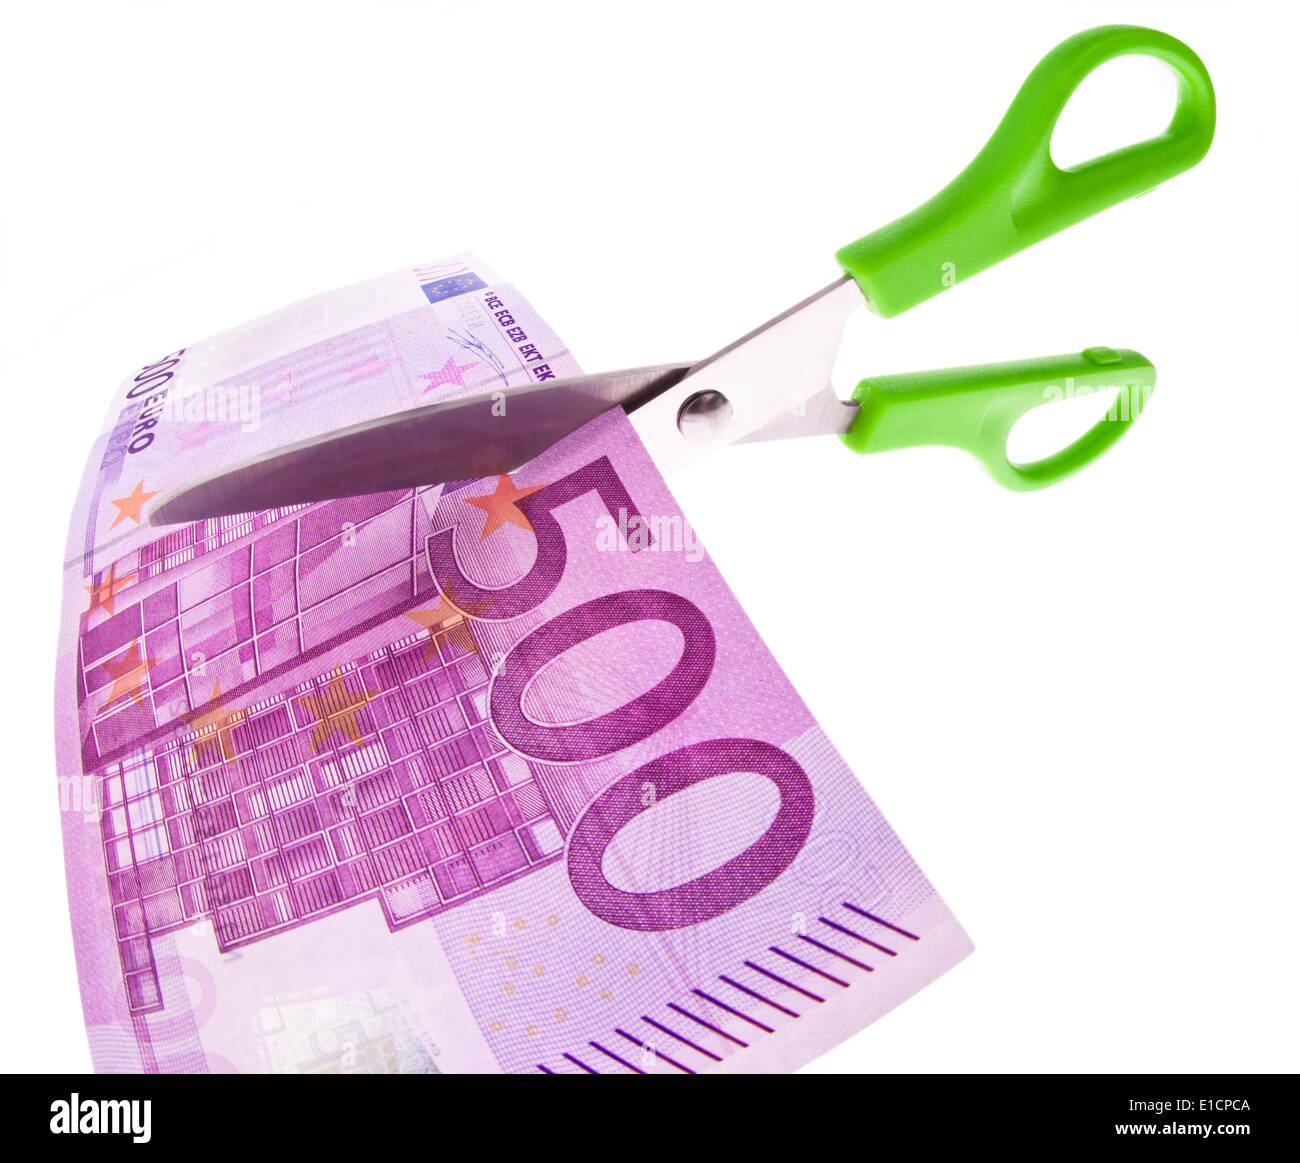 From an Euro banknote a piece is cut with scissors. Symbol taxes and fees. Stock Photo